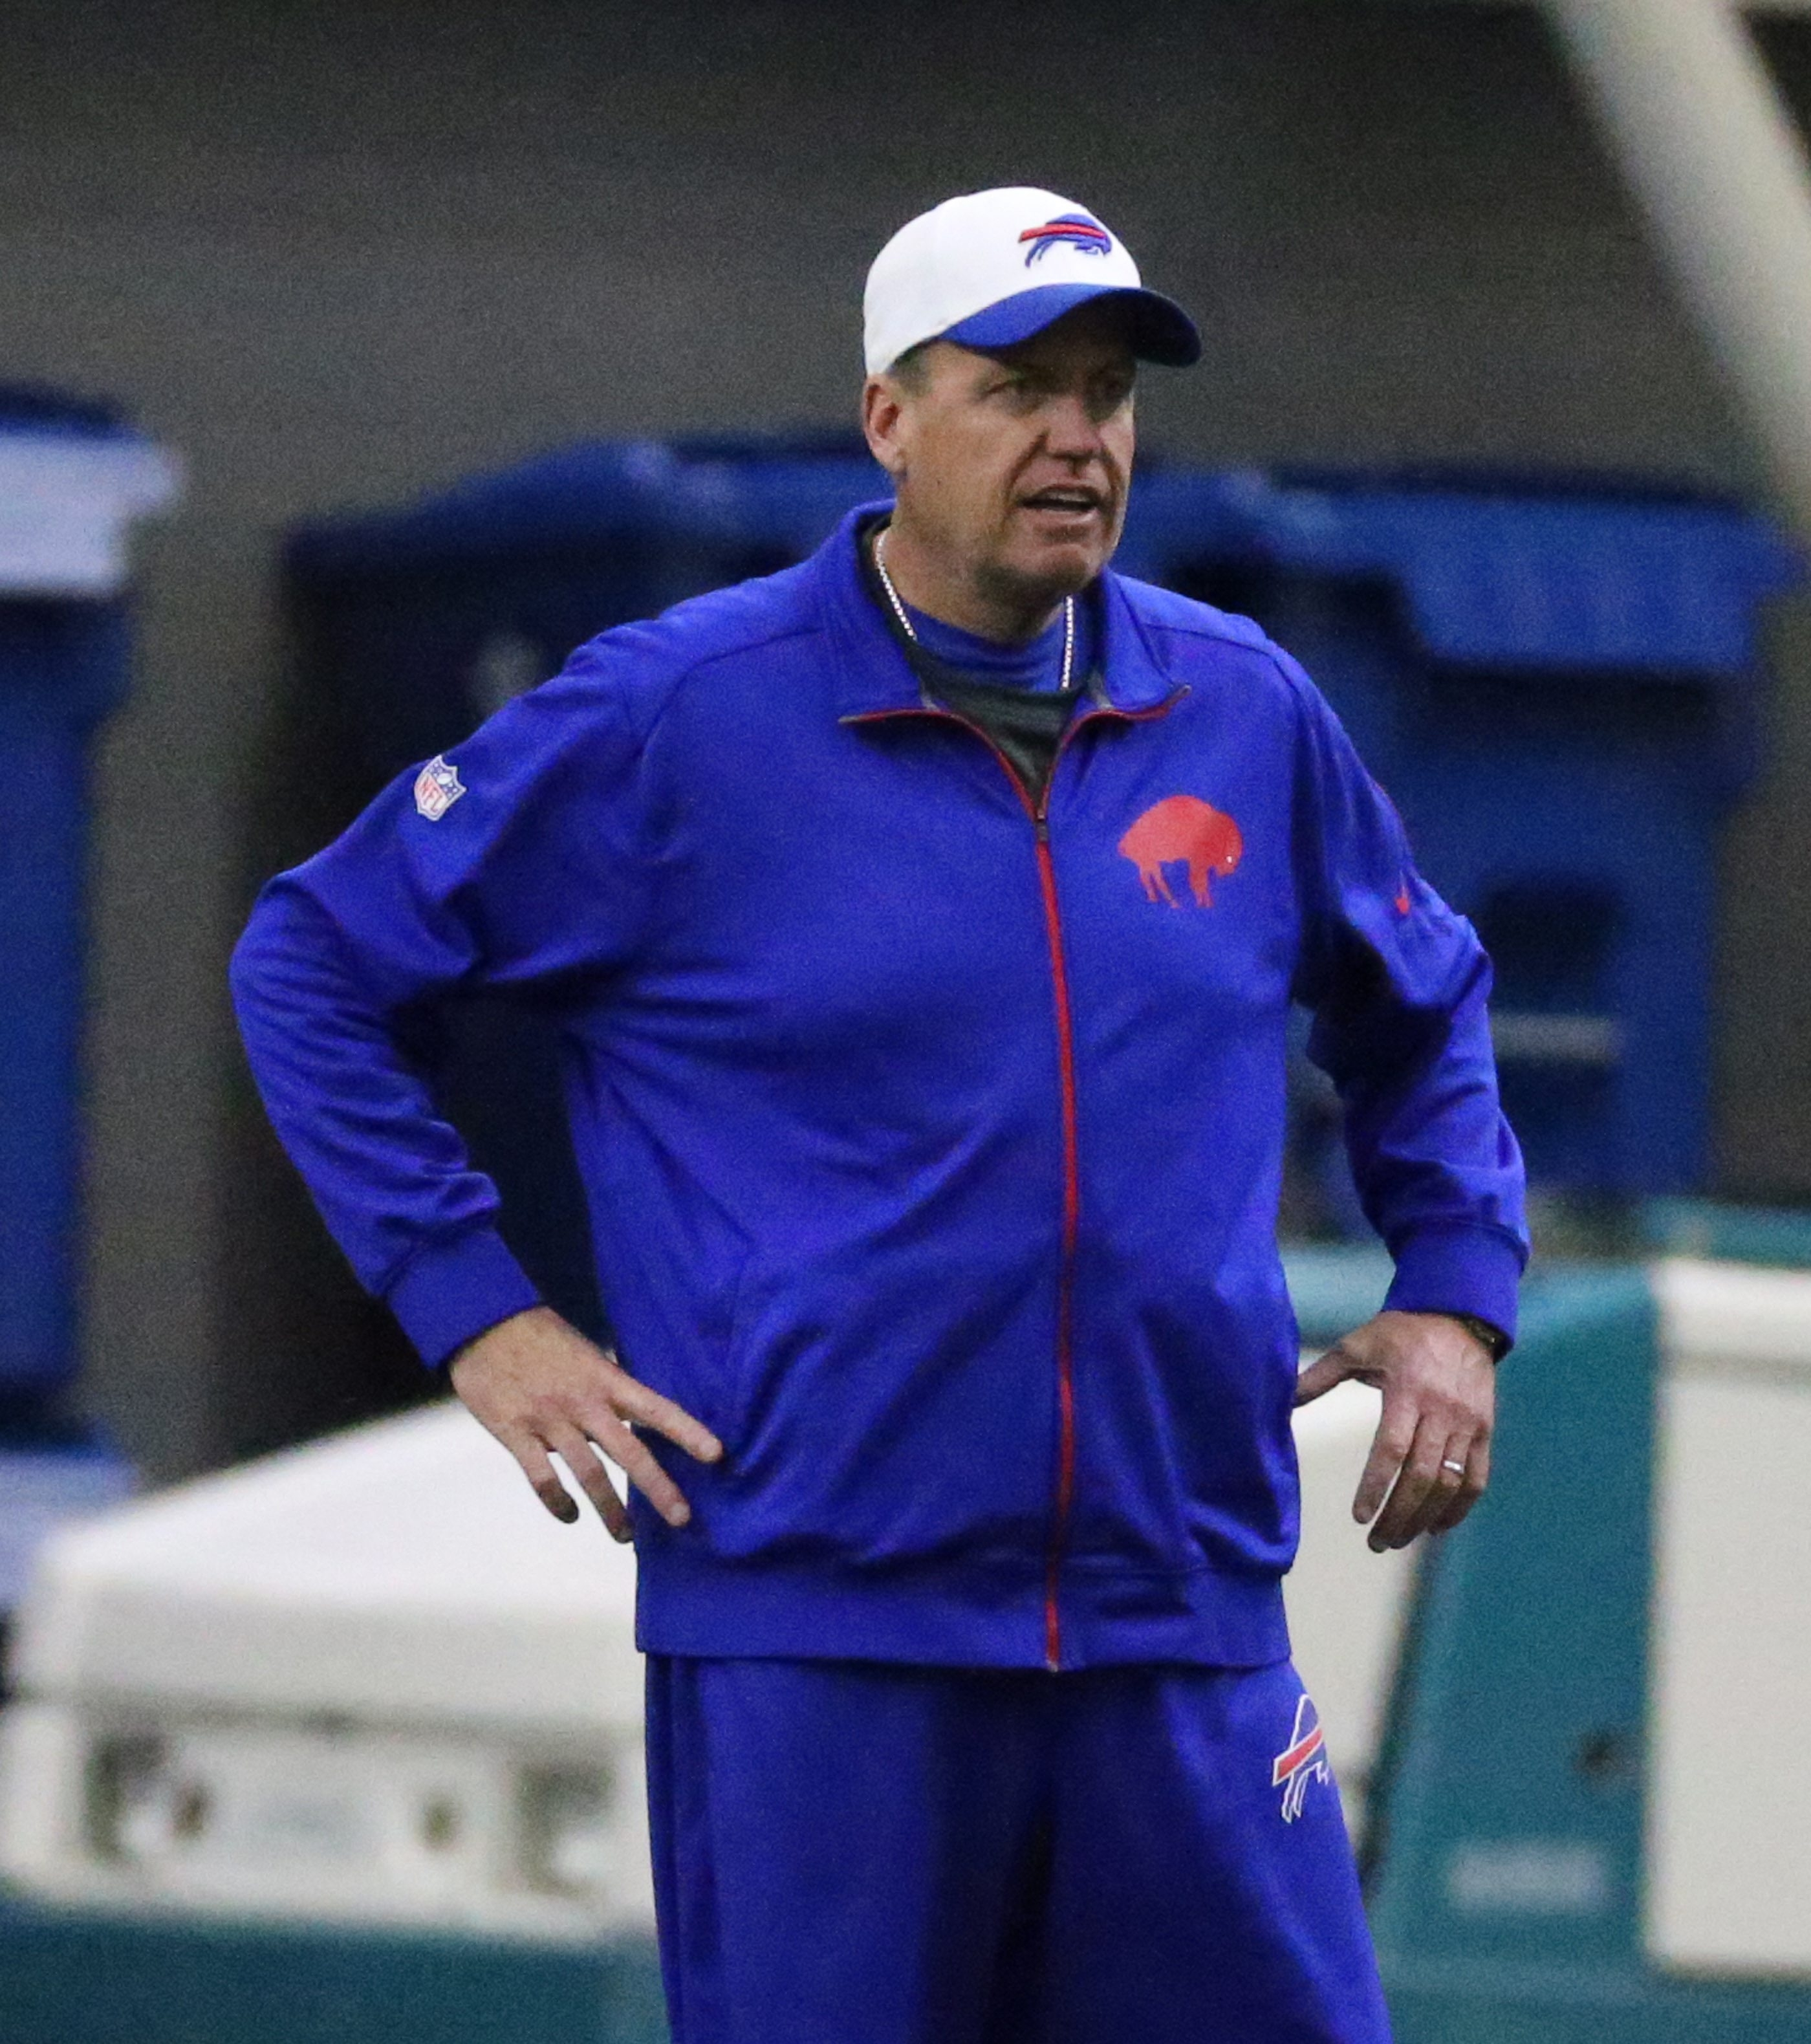 Buffalo Bills head coach Rex Ryan got a vote of confidence from team owner Terry Pegula, as did General Manager Doug Whaley.